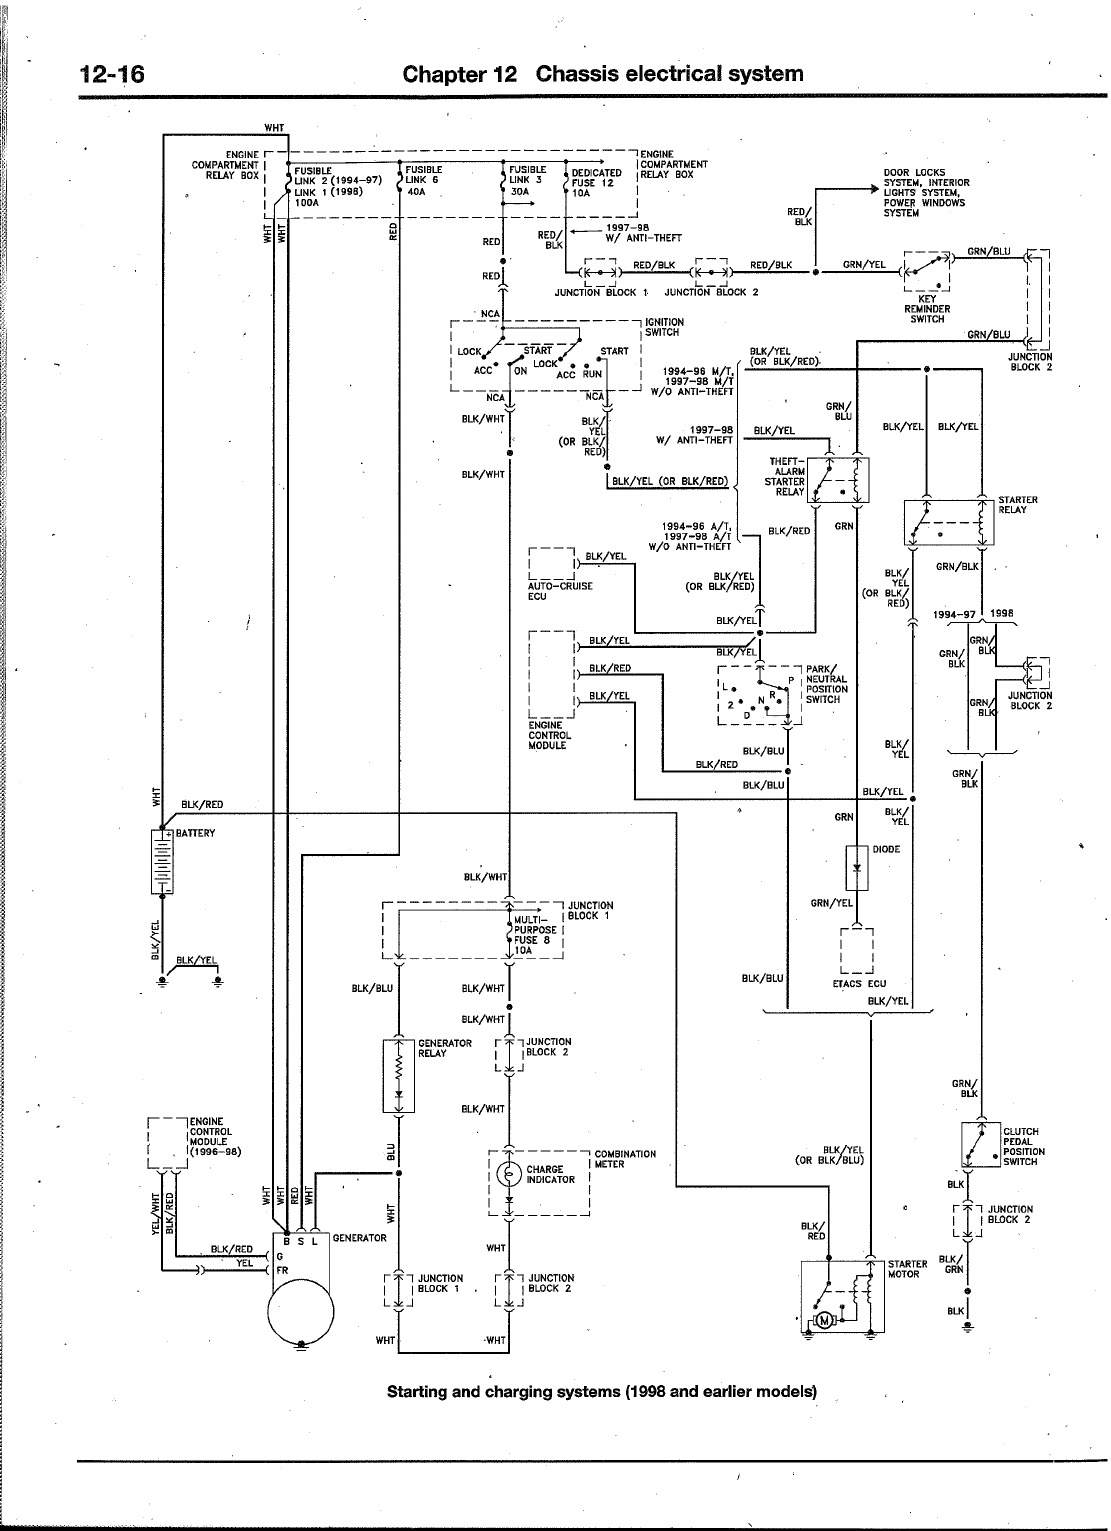 hight resolution of mitsubishi endeavor window wiring diagram schema diagram database mitsubishi endeavor wiring harness diagram